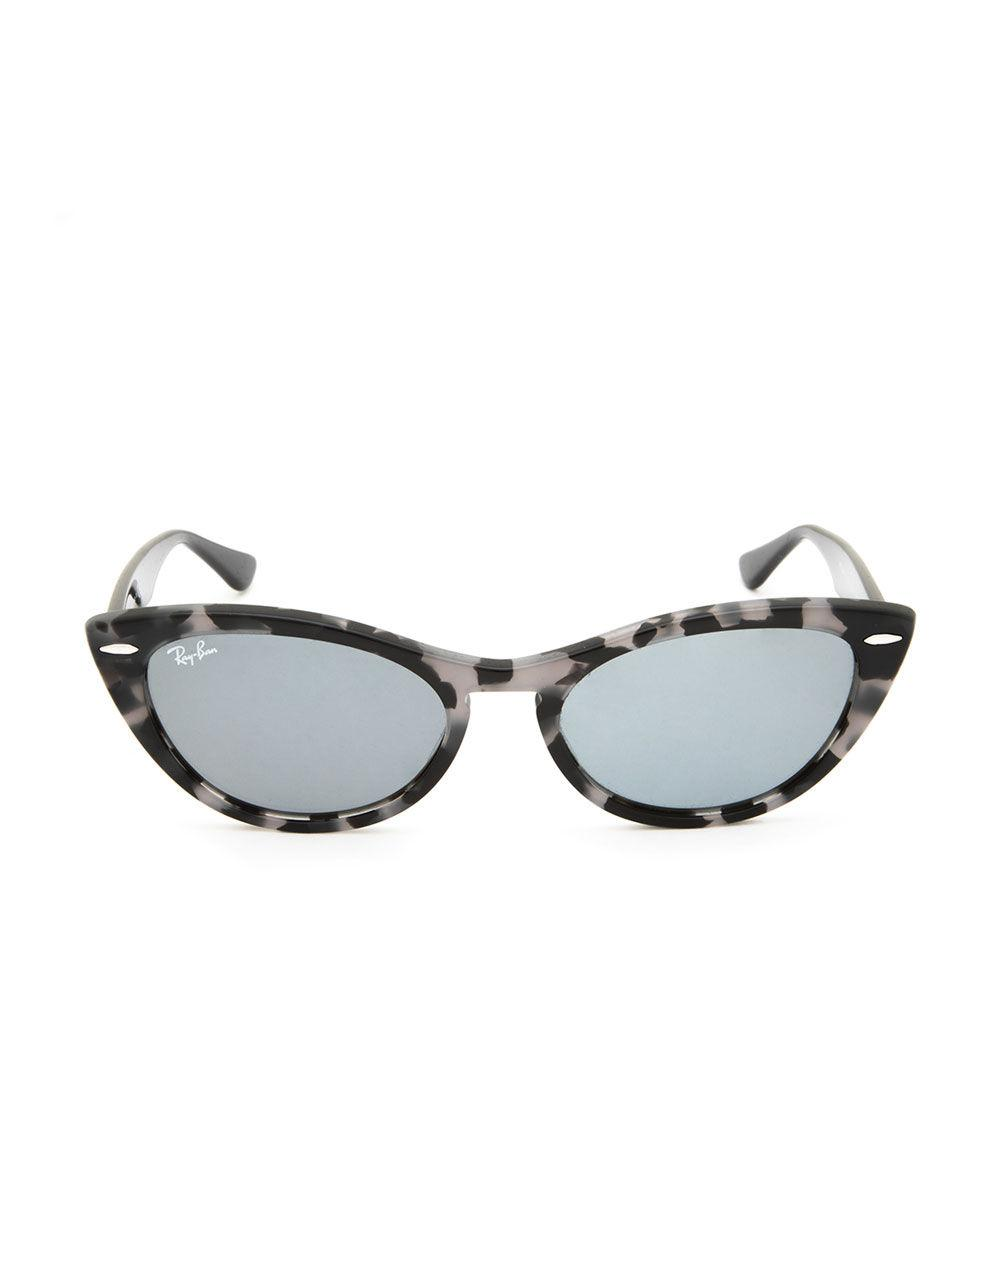 426cbcf863c Lyst - Ray-Ban Nina Gray Havana   Black Sunglasses in Black